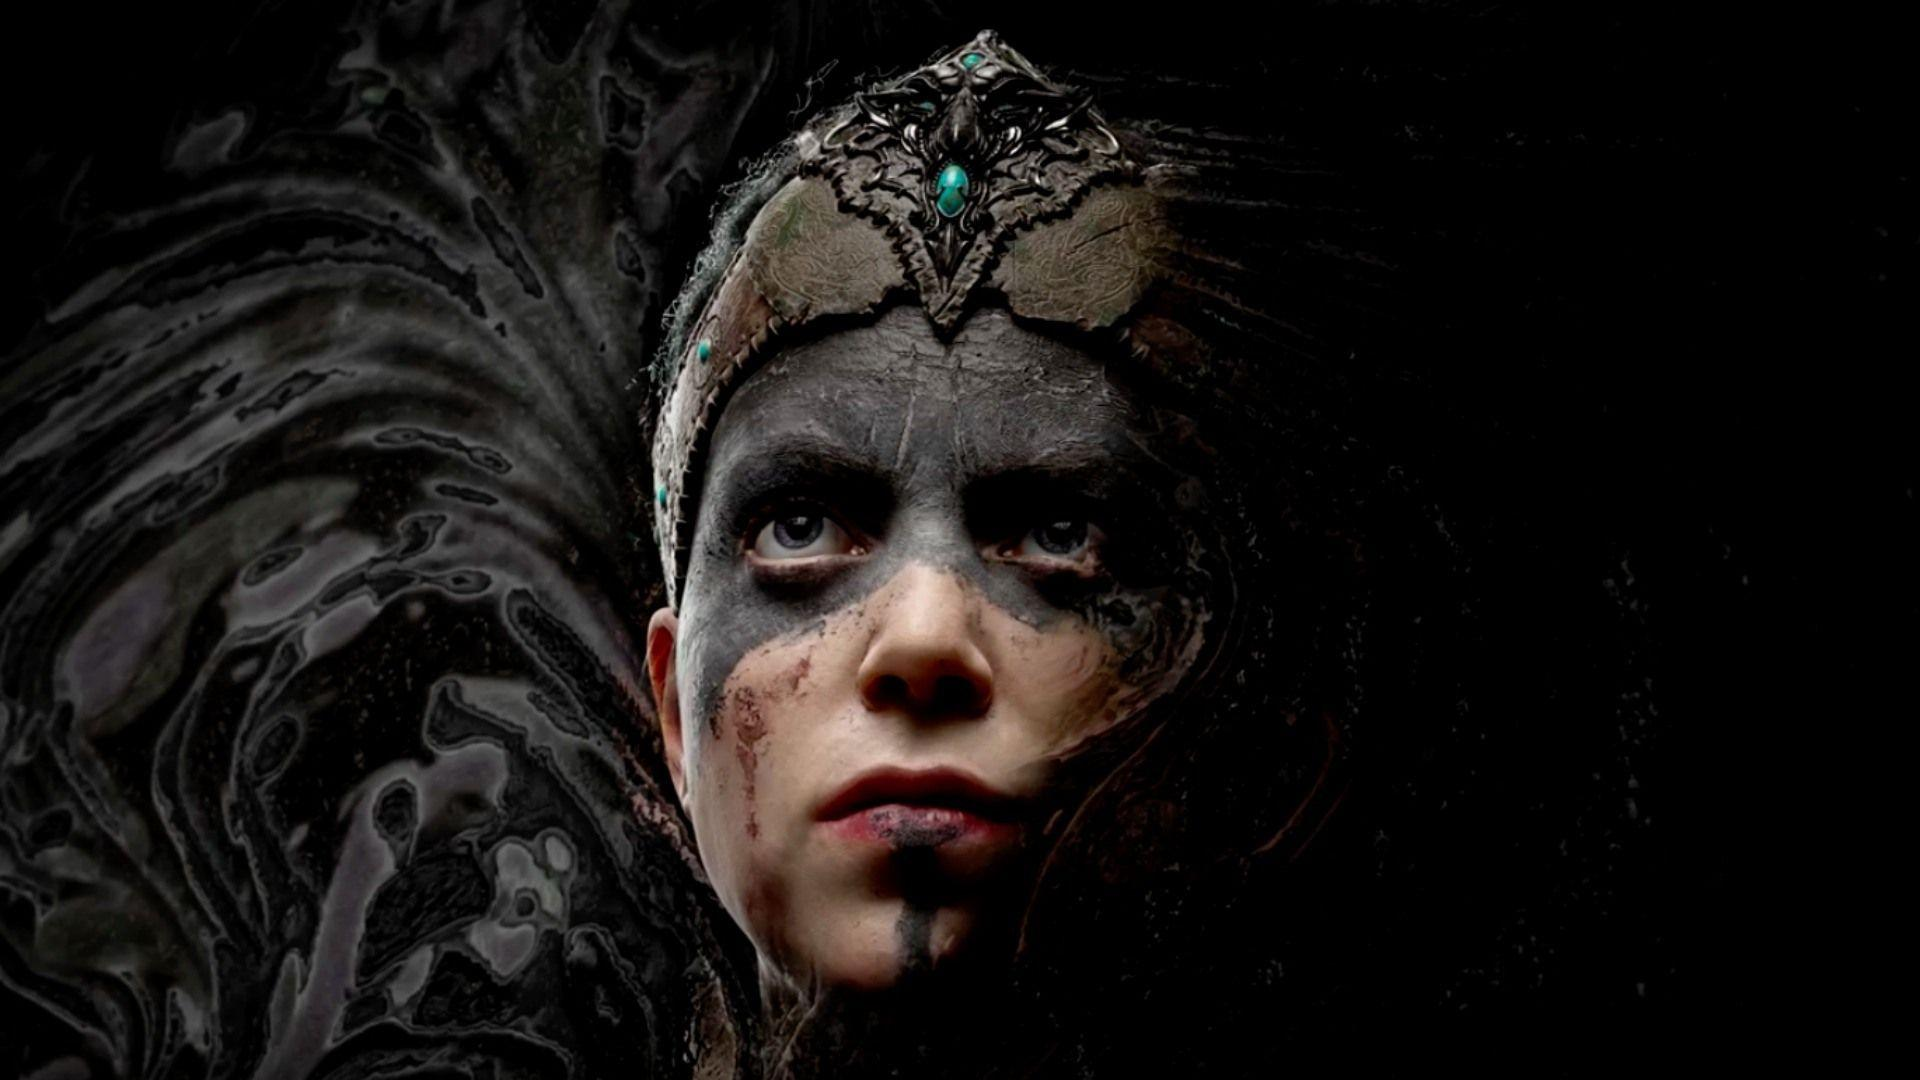 Hellblade: Senua's Sacrifice HD Wallpapers 2